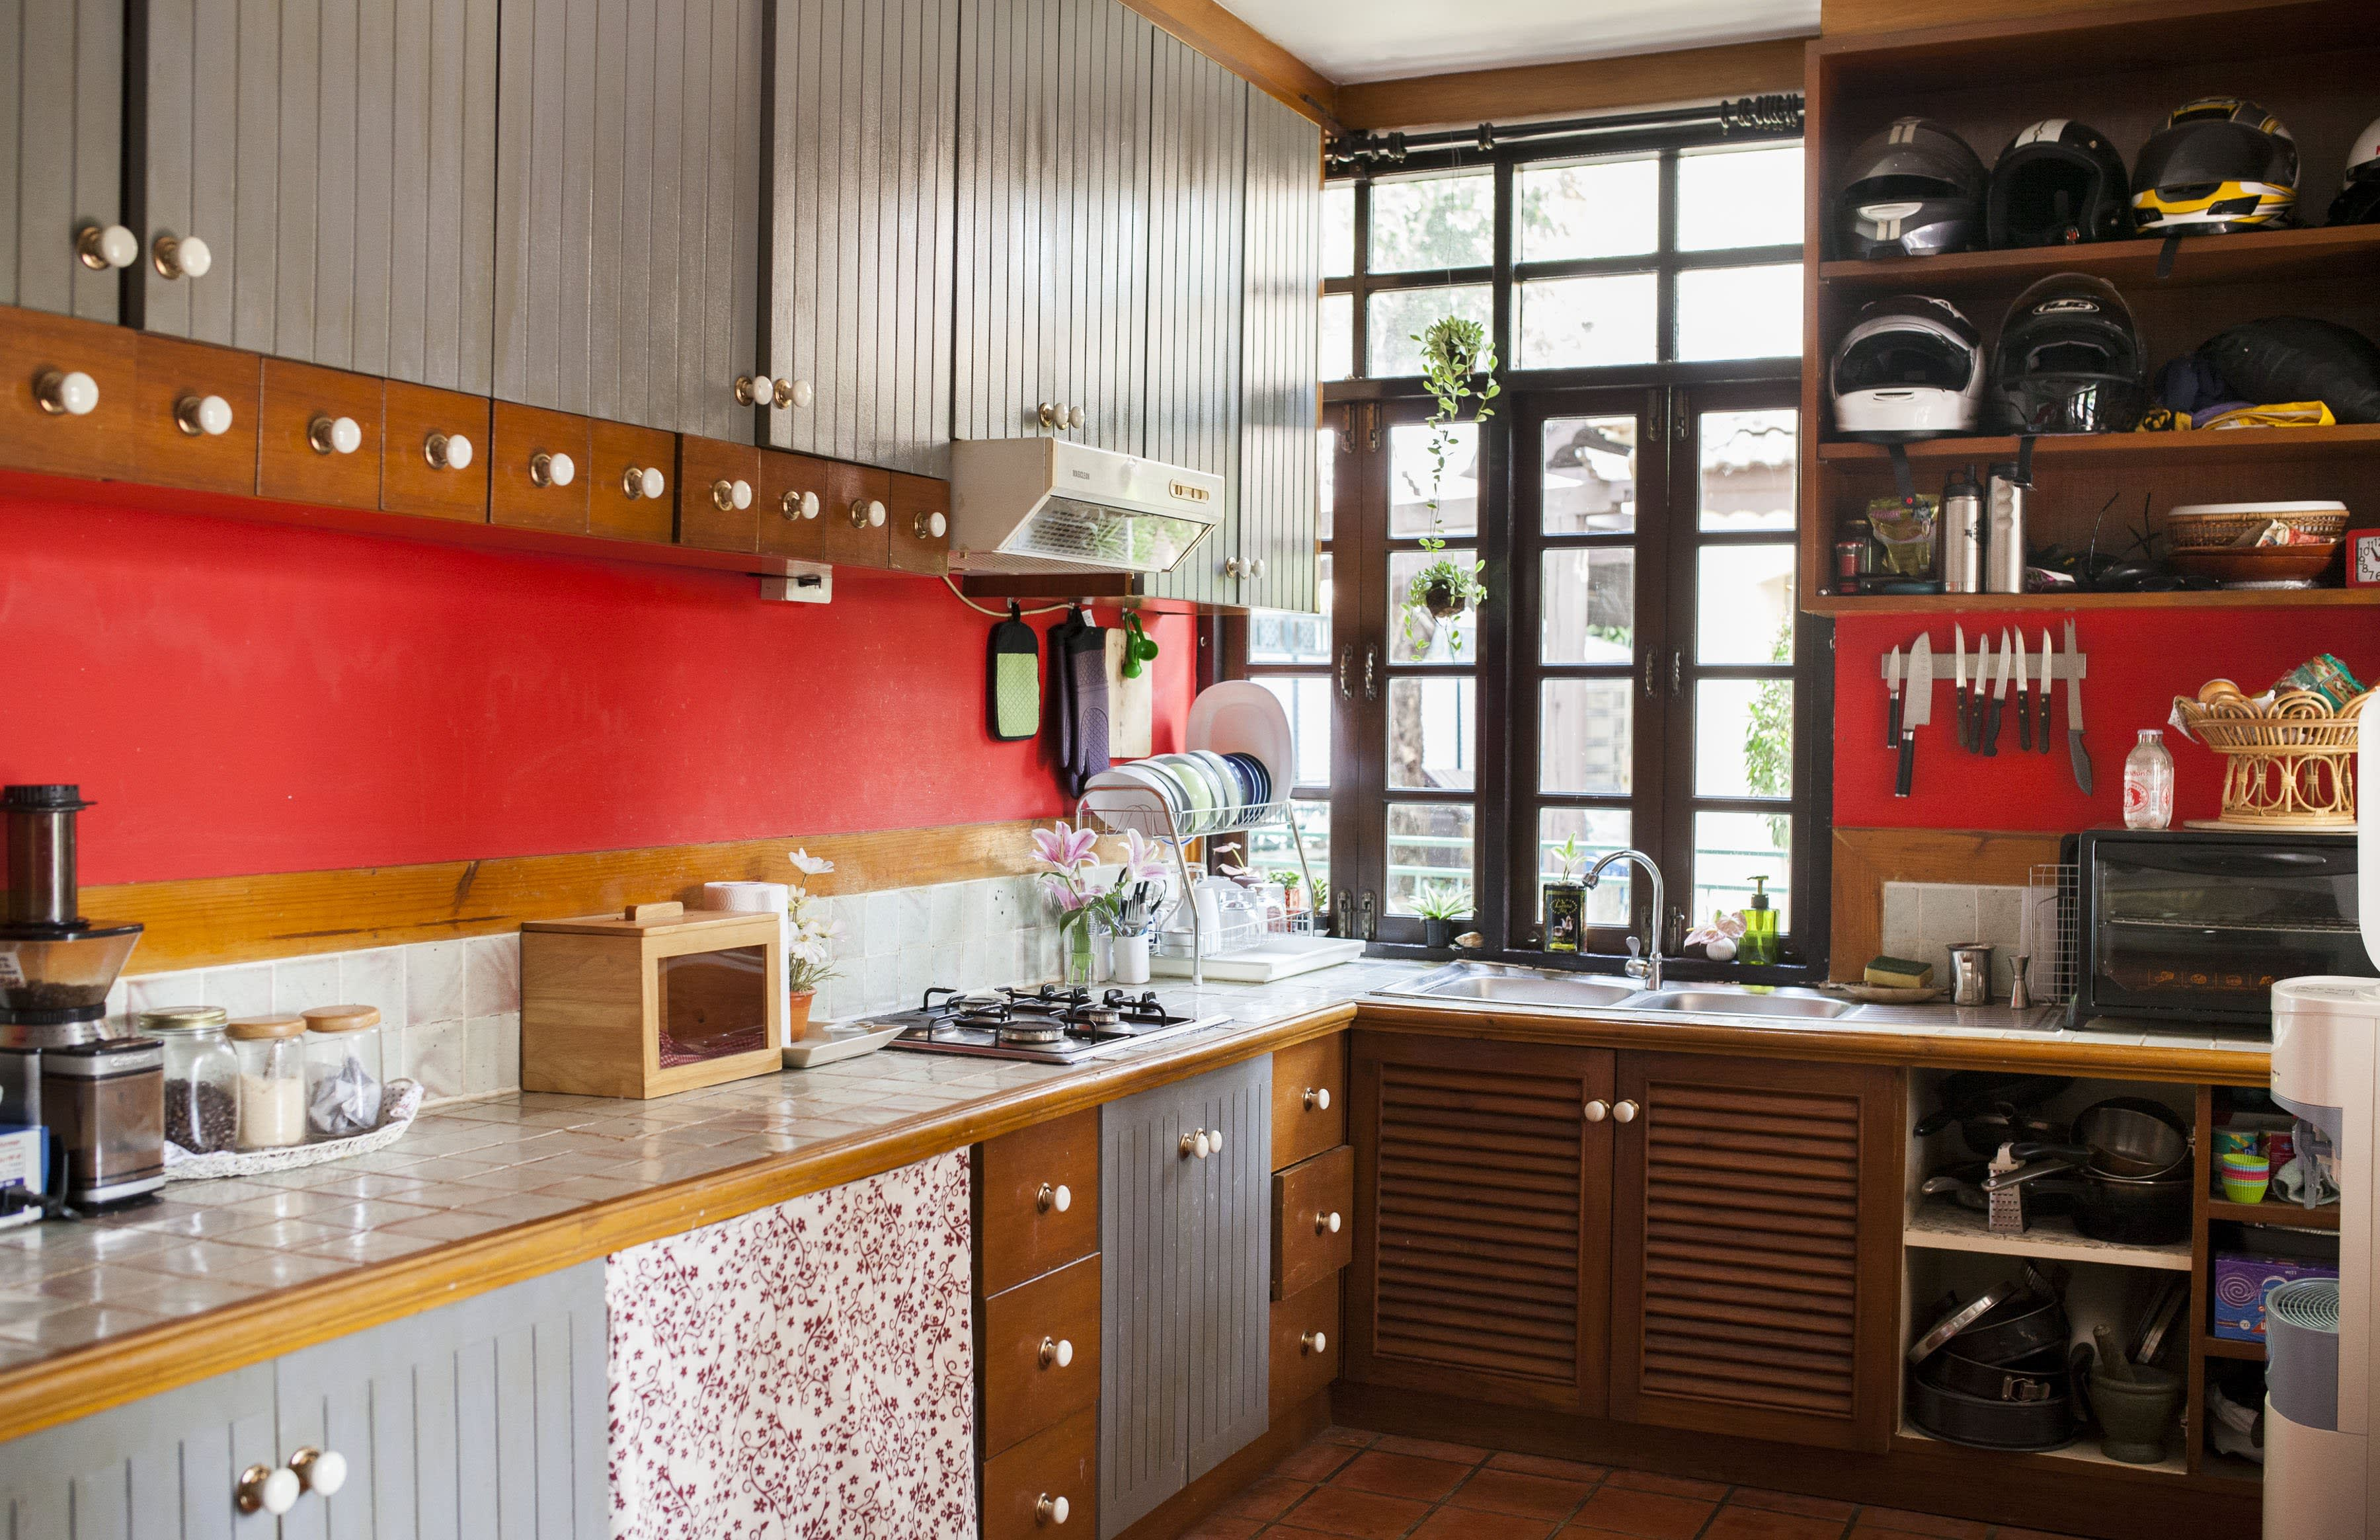 10 Real-Life Kitchens to Inspire Yours: gallery image 8